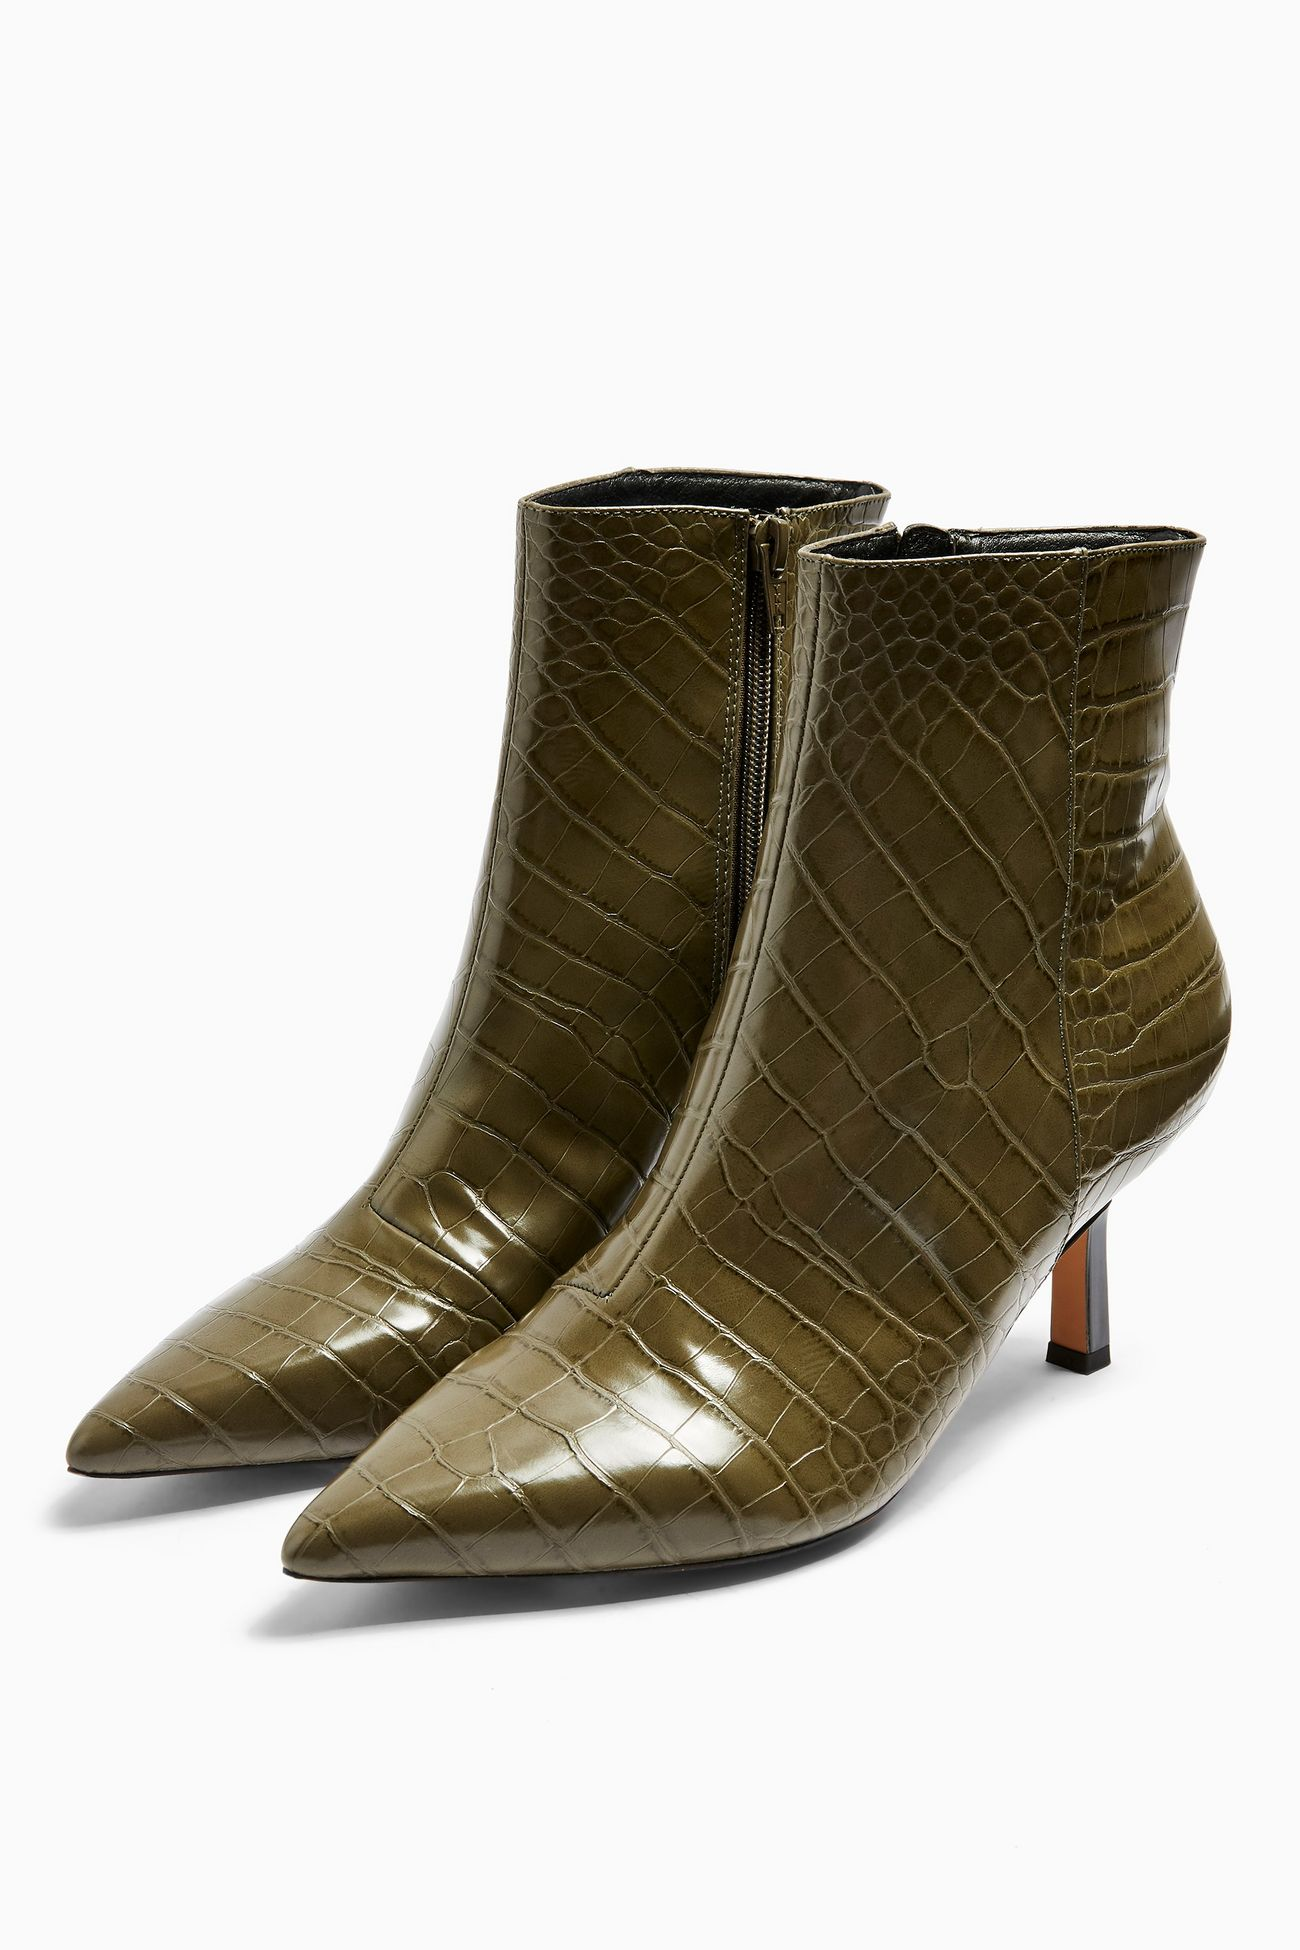 Topshop Croc Pointy Boots £39